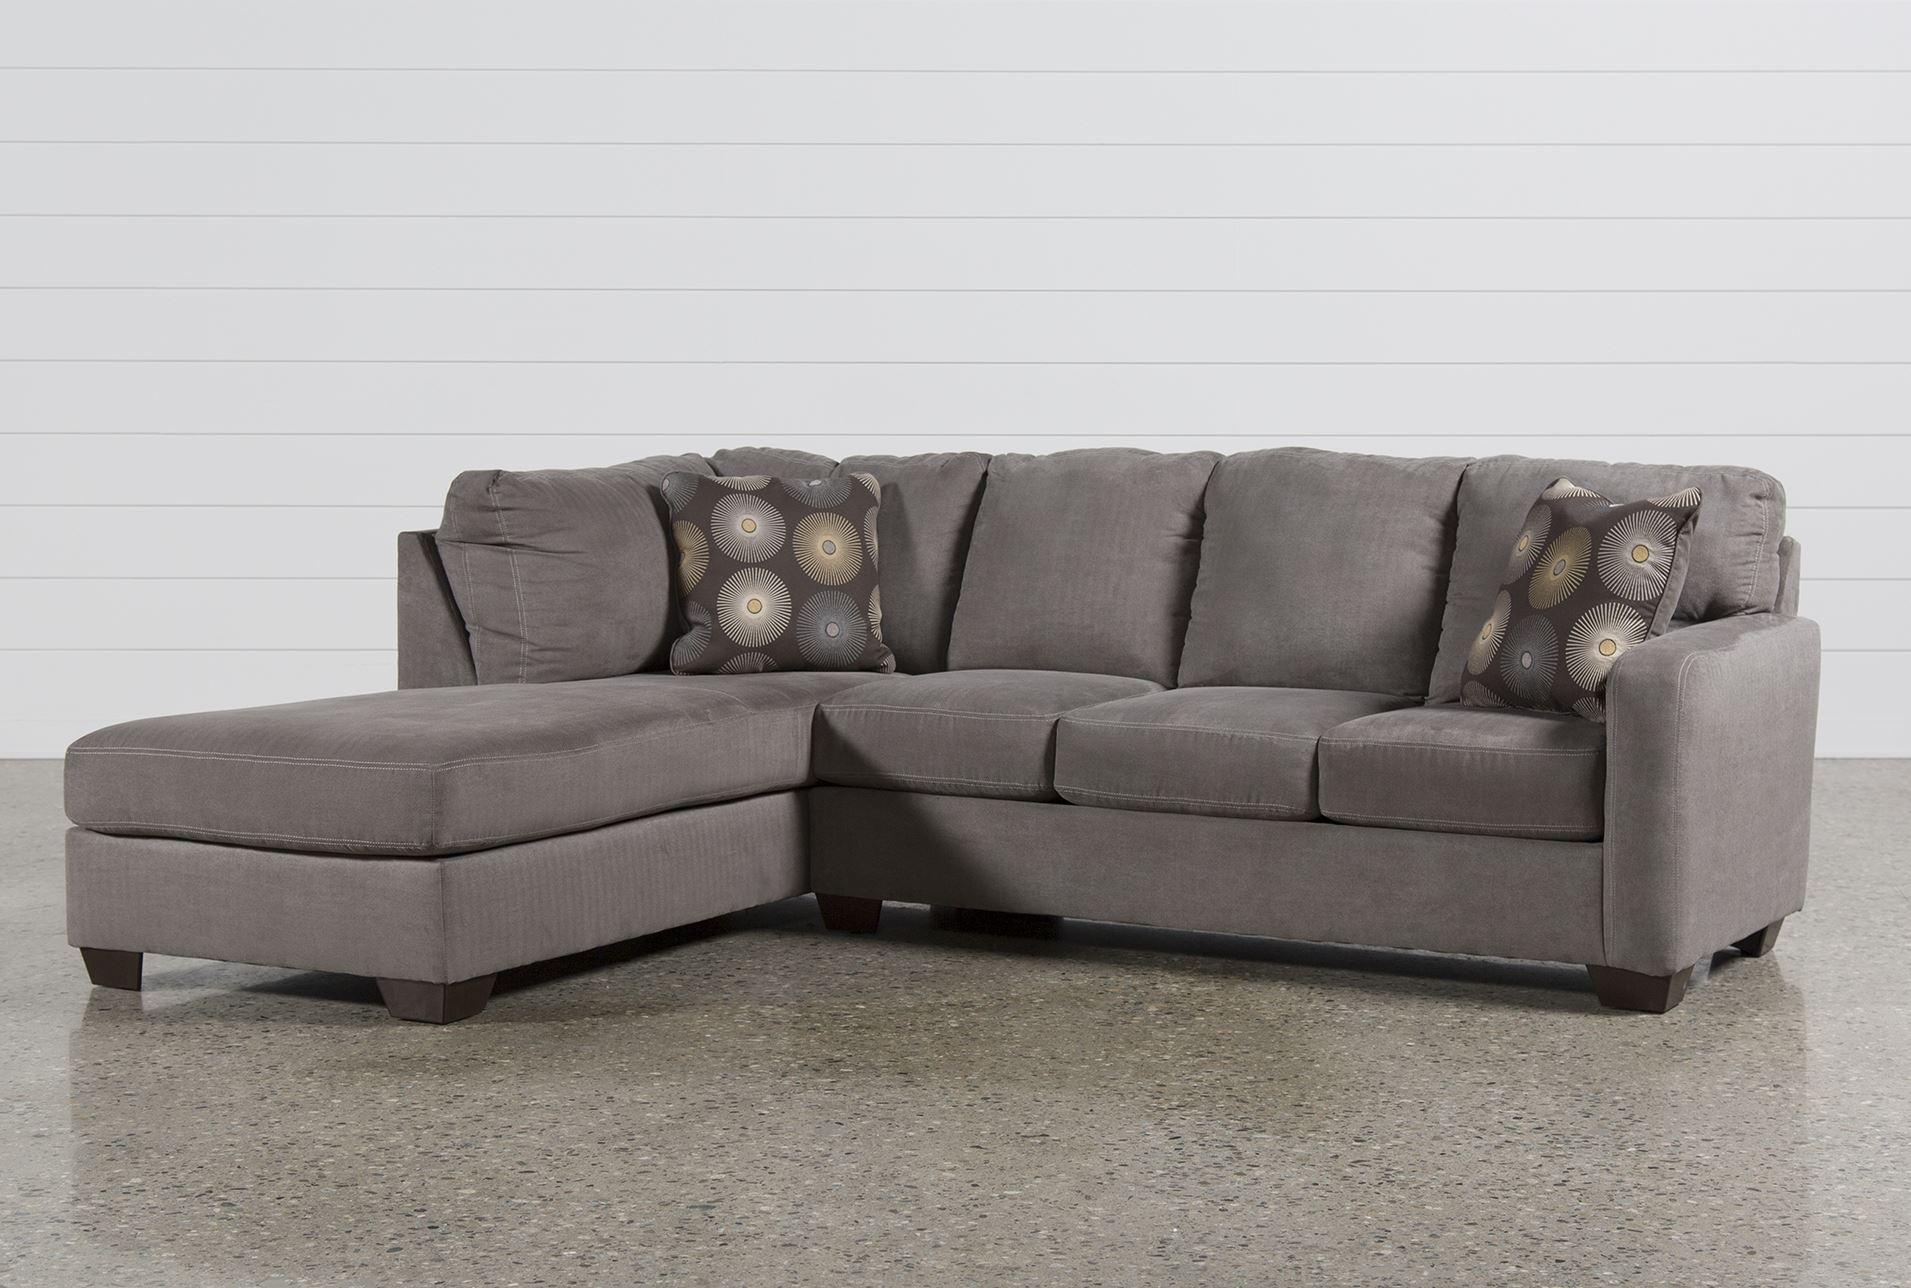 Laf Chaise Sectional Sofa | Baci Living Room Throughout Malbry Point 3 Piece Sectionals With Raf Chaise (View 5 of 30)